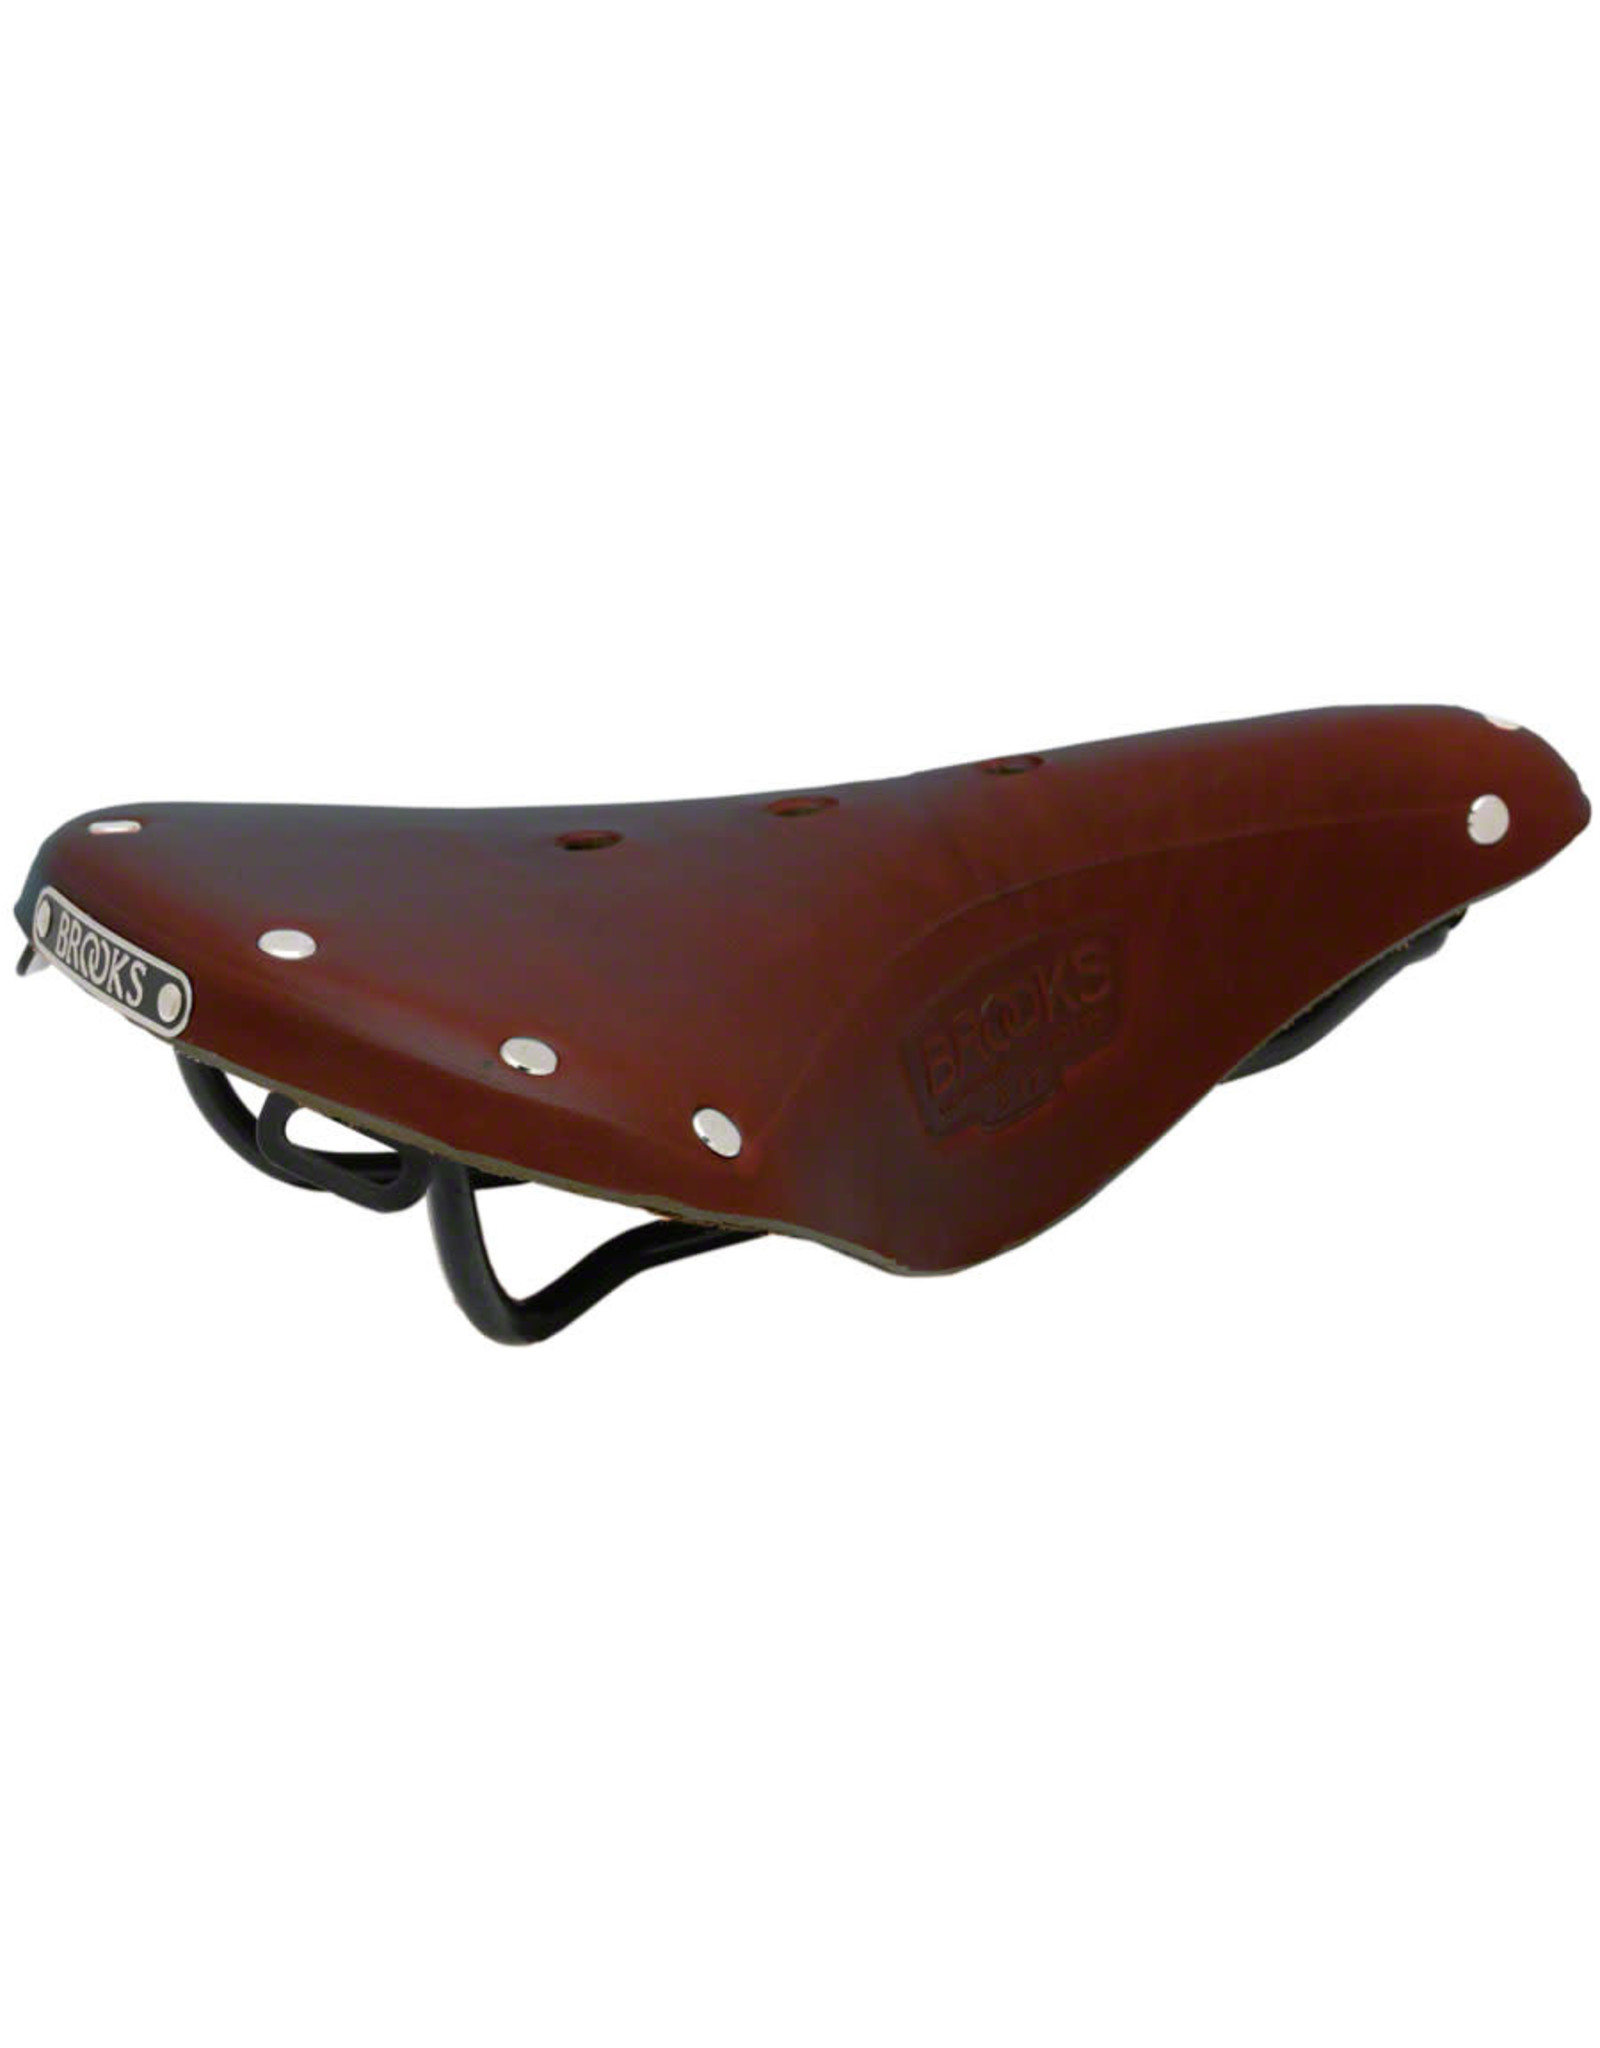 Brooks Brooks Classic Leather Saddles B17 Antique Brown